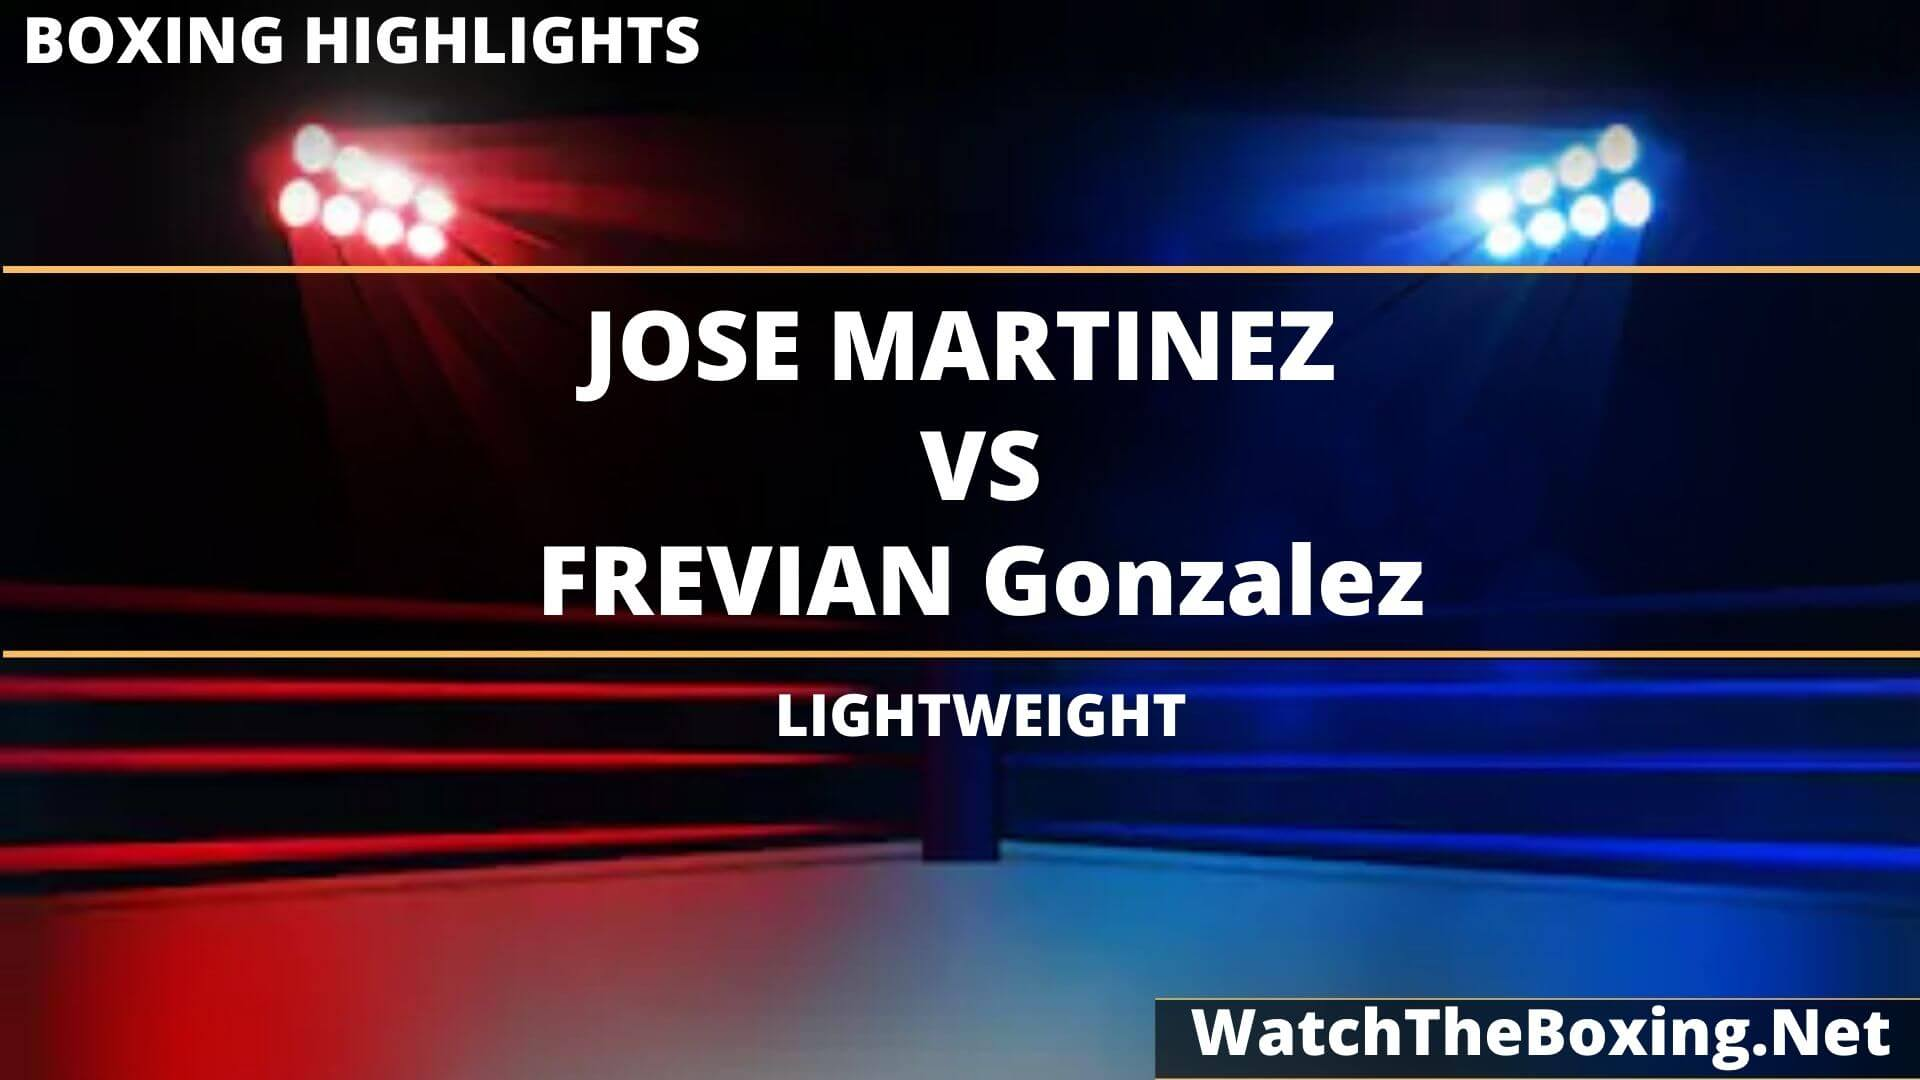 Jose Martinez Vs Frevian Gonzalez Highlights 2020 Lightweight